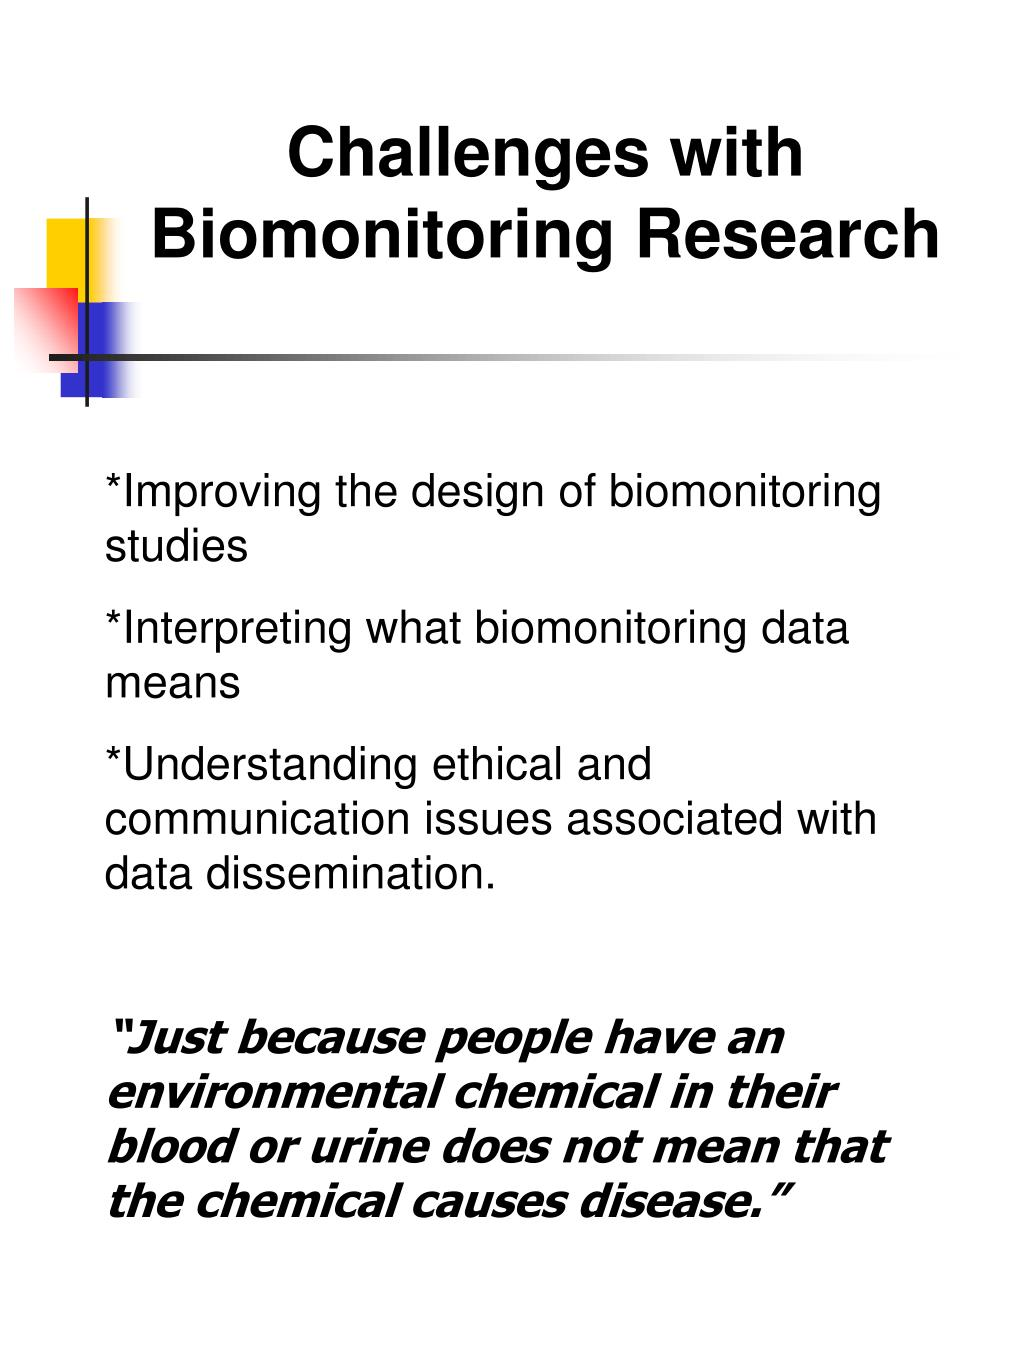 Challenges with Biomonitoring Research